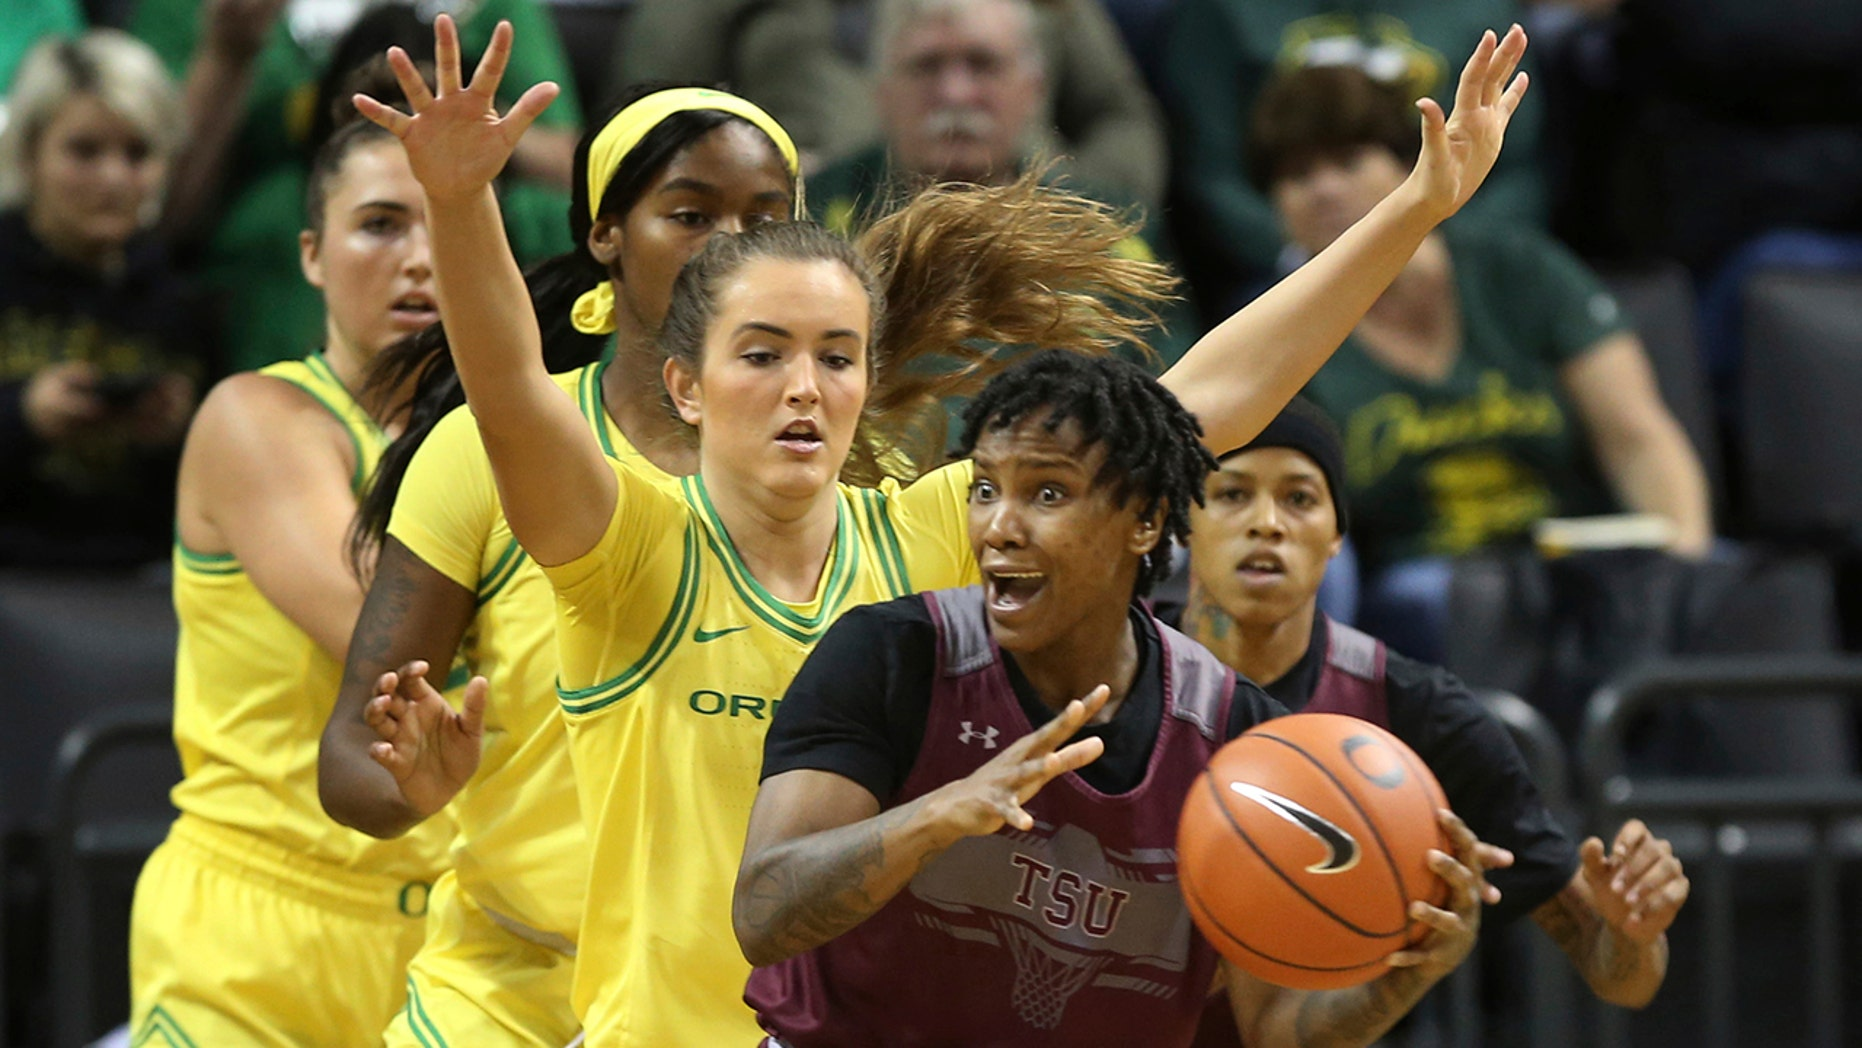 Texas Southern's Ciani Cryor, front, looks for an open teammate while under pressure from Oregon's Erin Boley, left, Ruthy Hebard and Taylor Chavez during the first quarter of an NCAA college basketball game in Eugene, Ore., Saturday, Nov. 16, 2019. (AP Photo/Chris Pietsch)